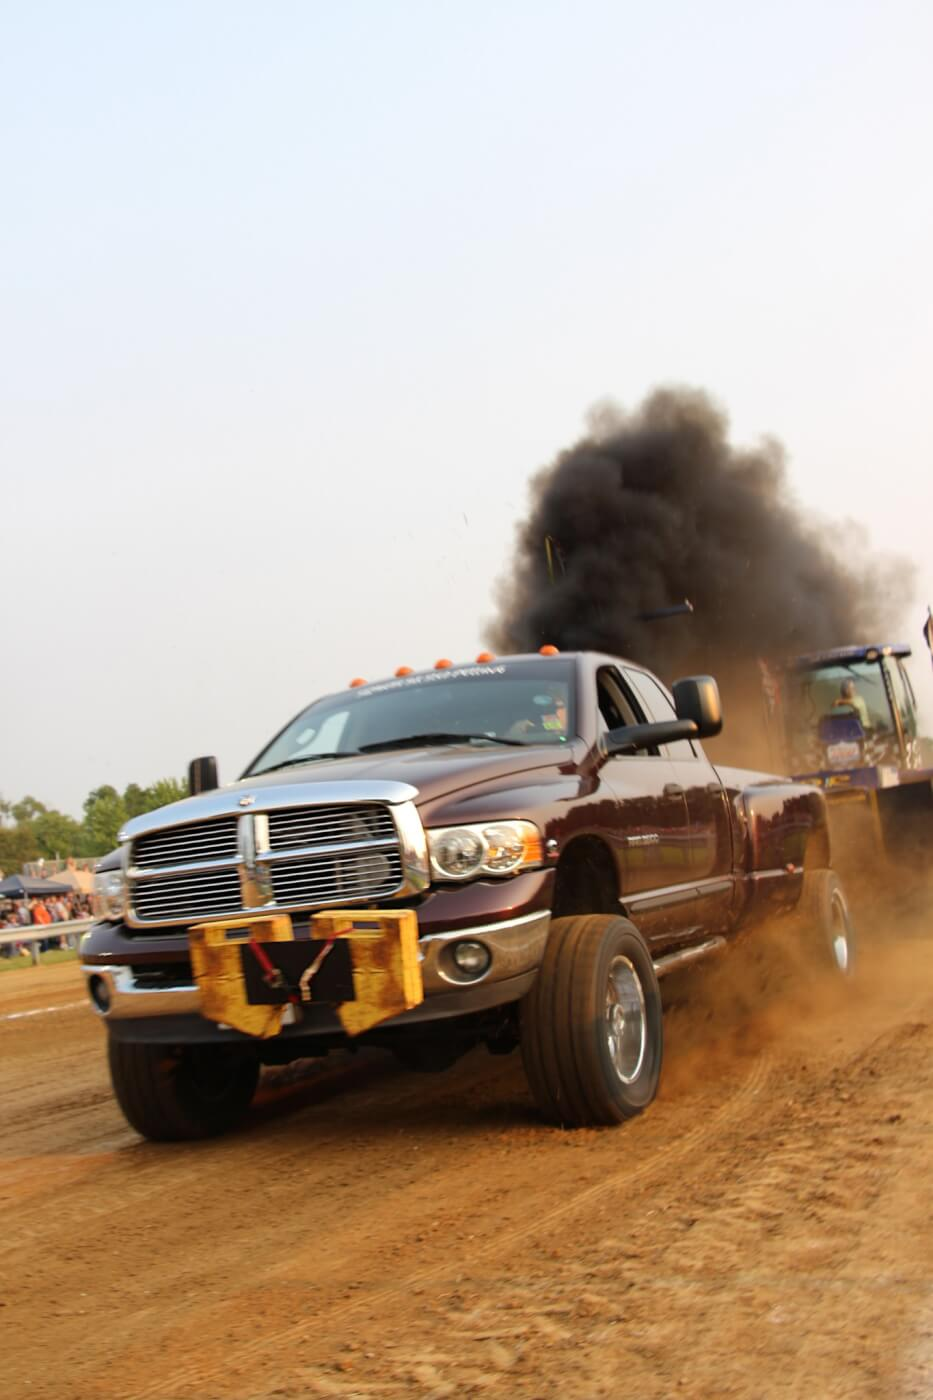 Clawing his way to a 328-feet second place finish in Open Street was Eric Loy's 2005 Dodge Ram 3500. He would also pull in the Work Stock Class later in the night—the class his truck was built to compete in—where he claimed first.